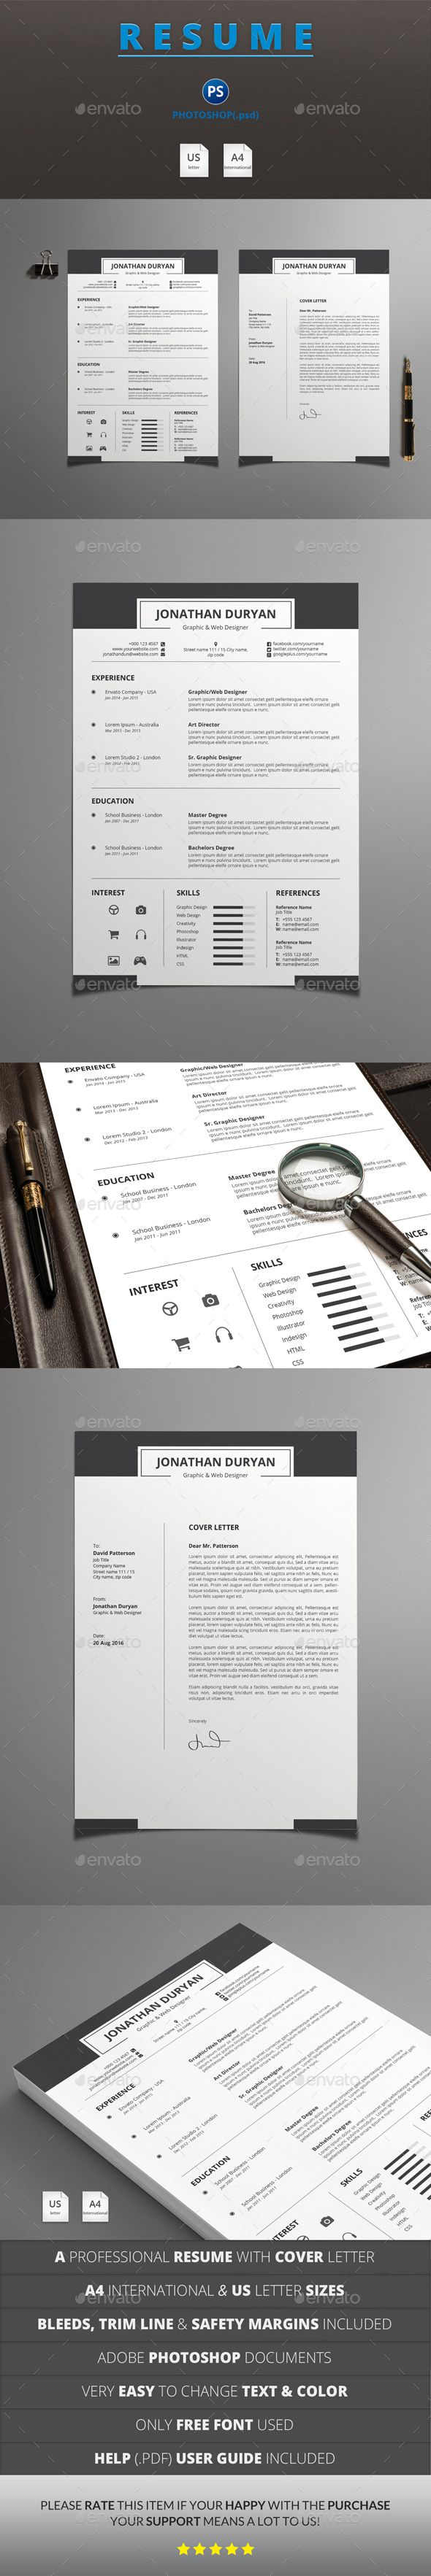 Resume Templates PSD 49 best Resumes